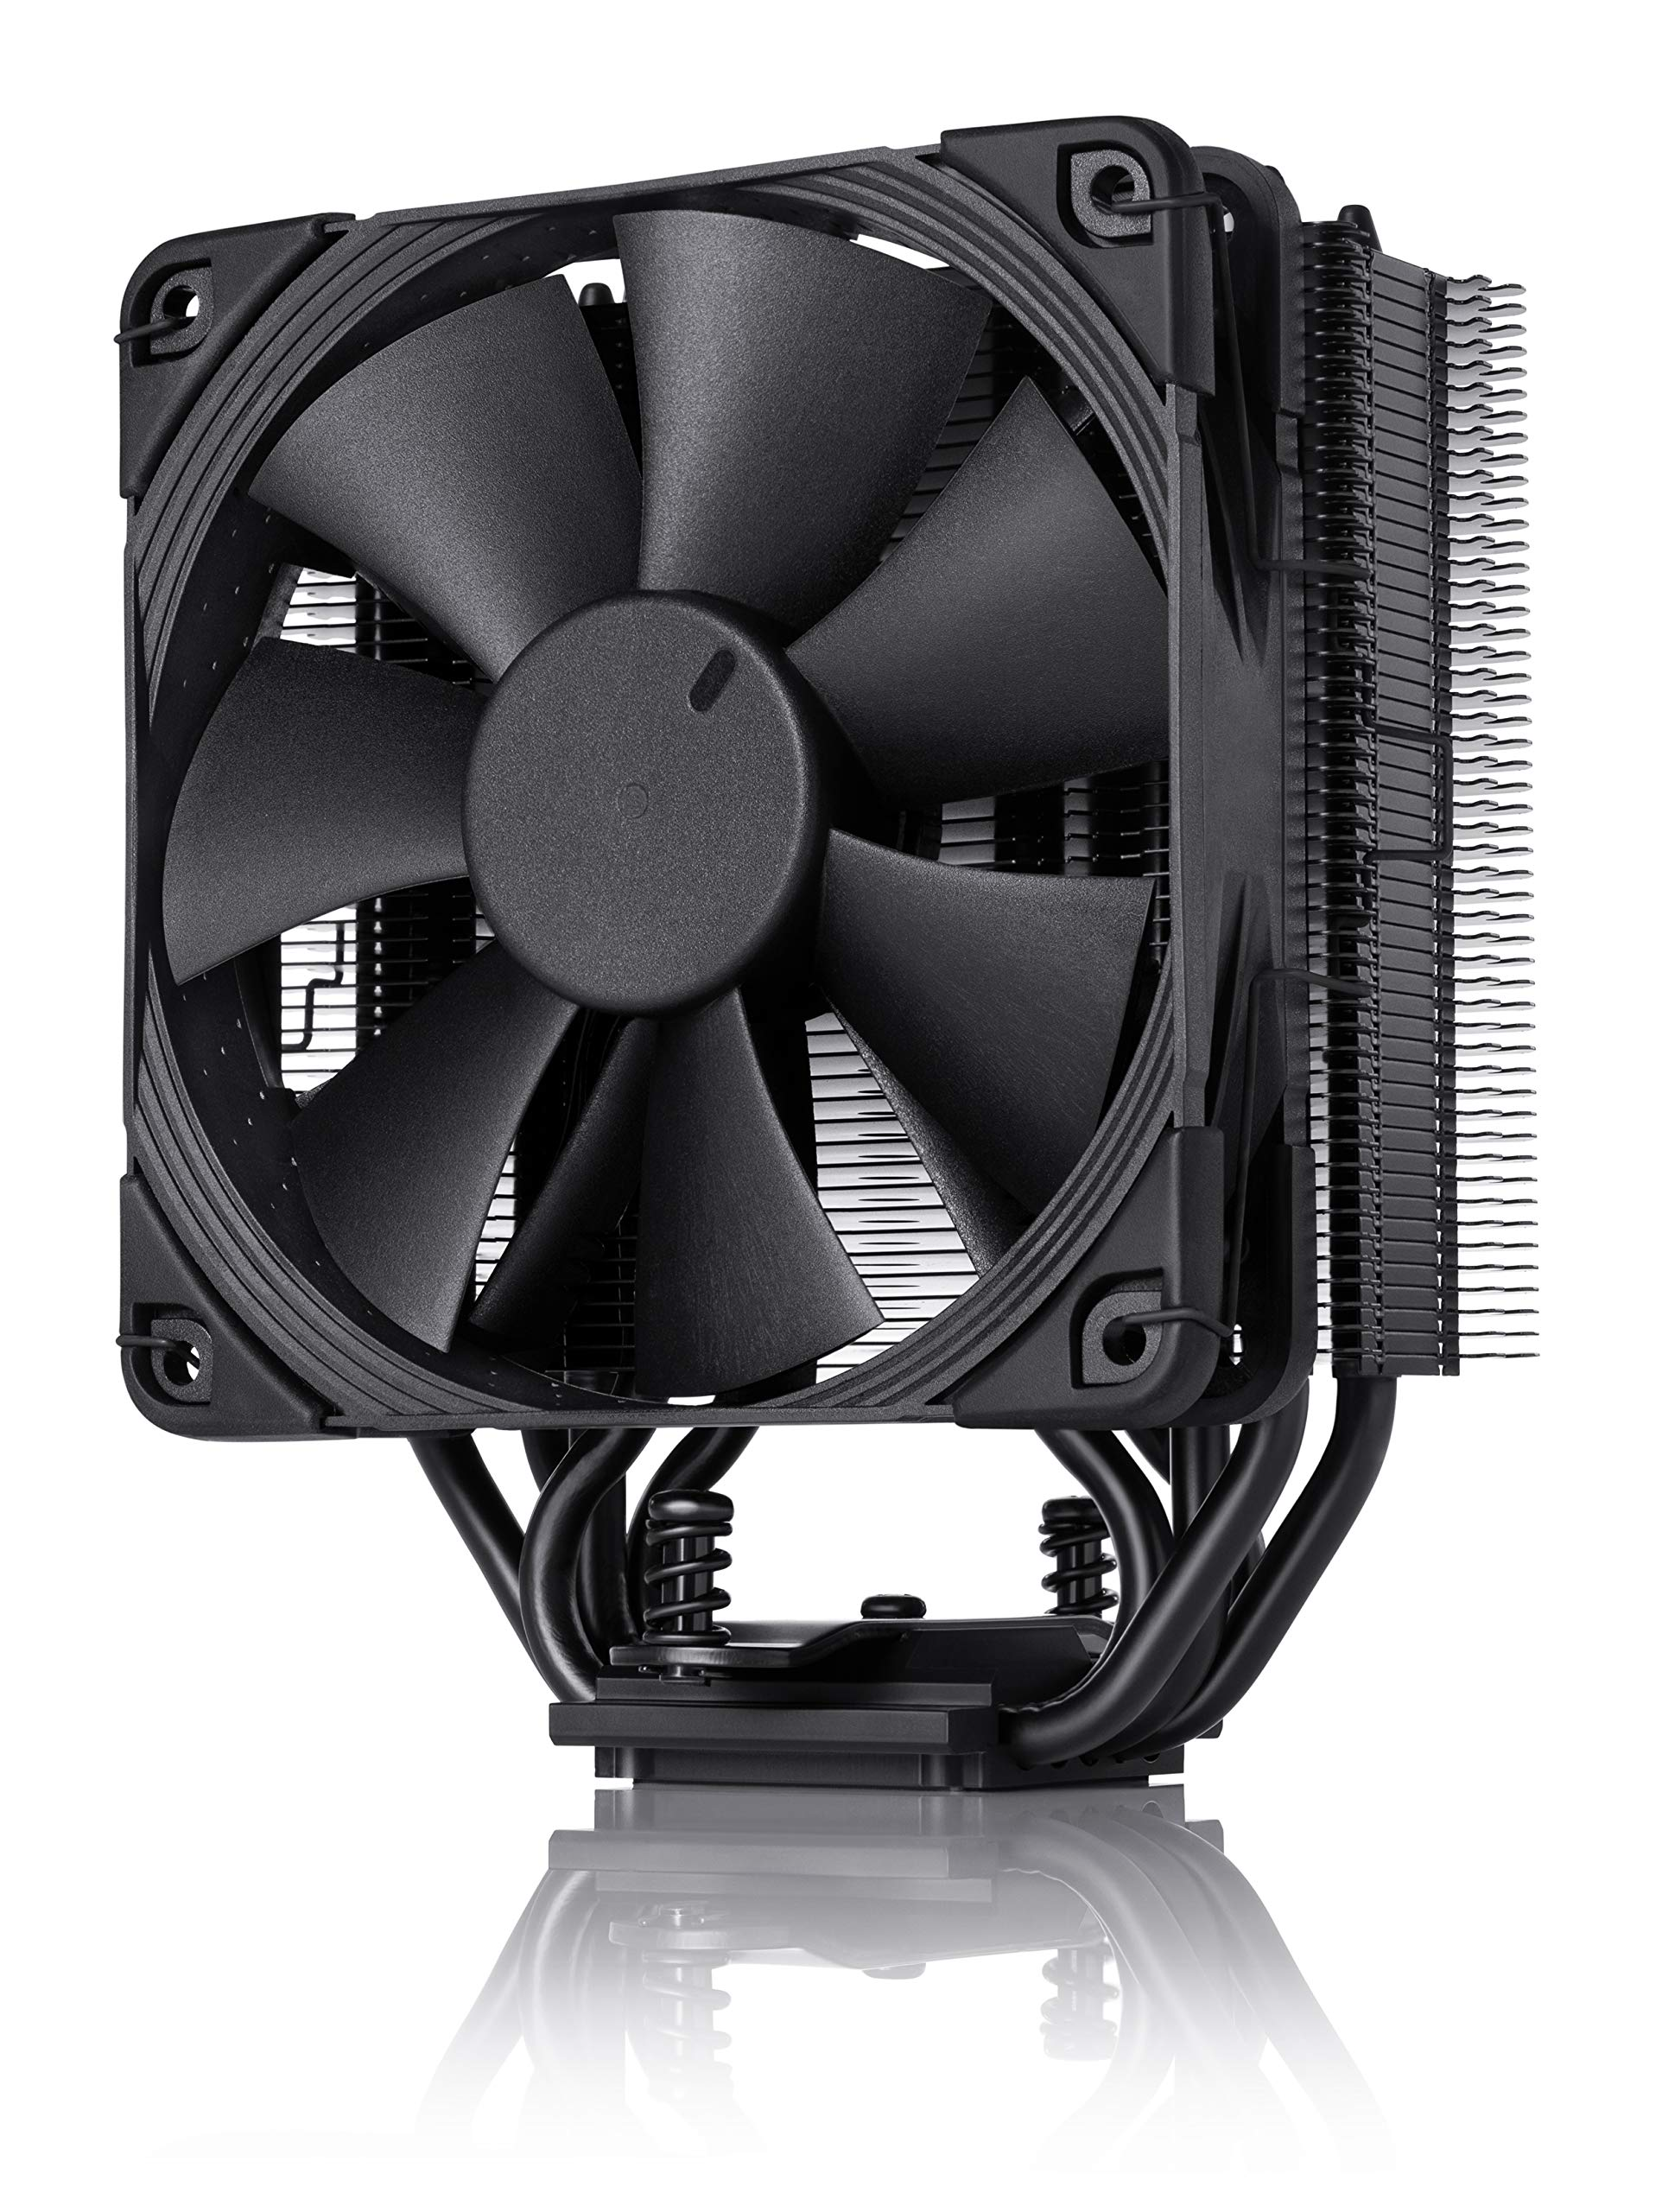 NOCTUA NH-U12S chromax.Black, 120mm Single-Tower CPU Cooler (Black) by NOCTUA